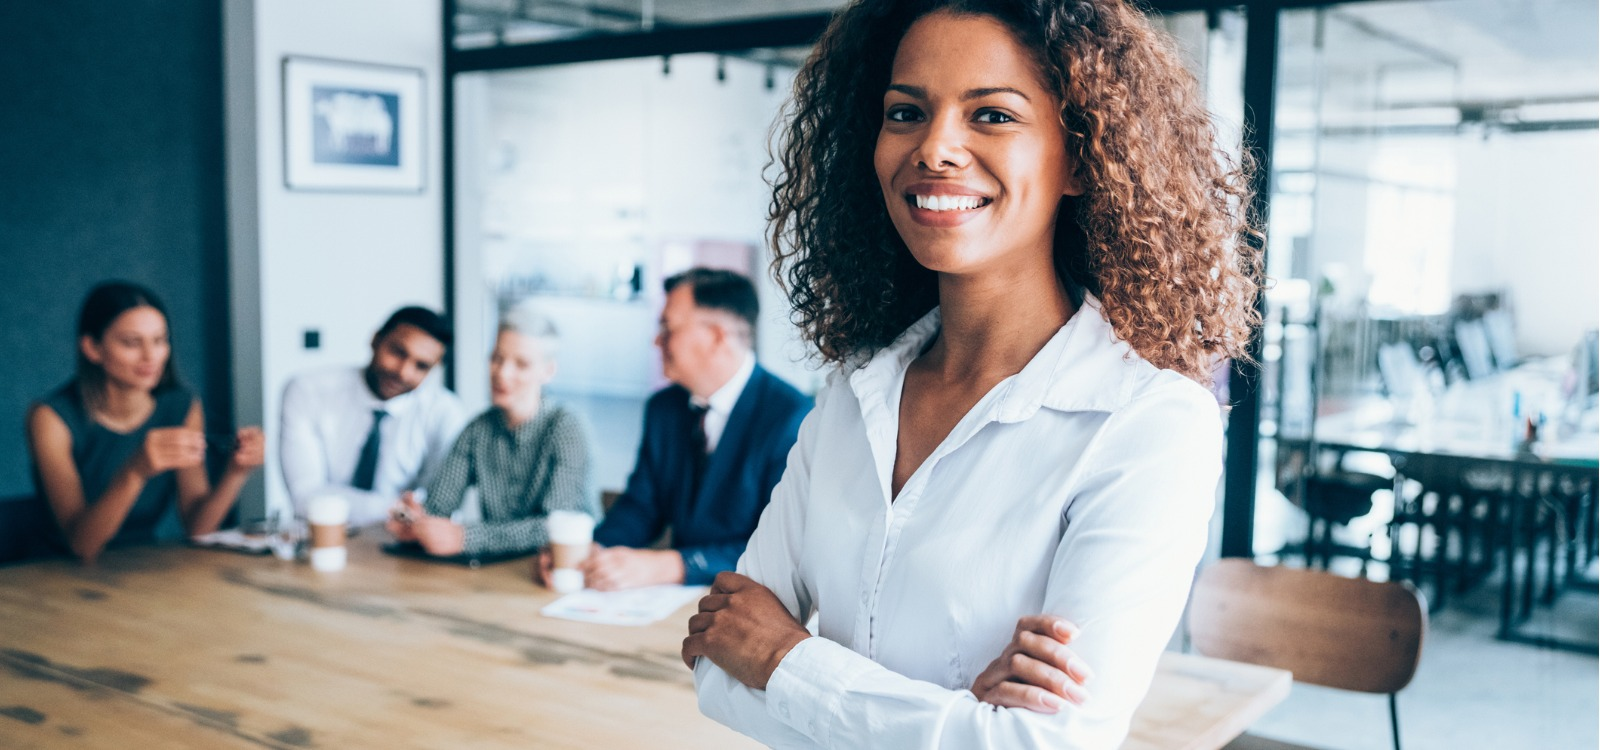 businesswoman standing with arms crossed in front of her team | grow your business during challenging times